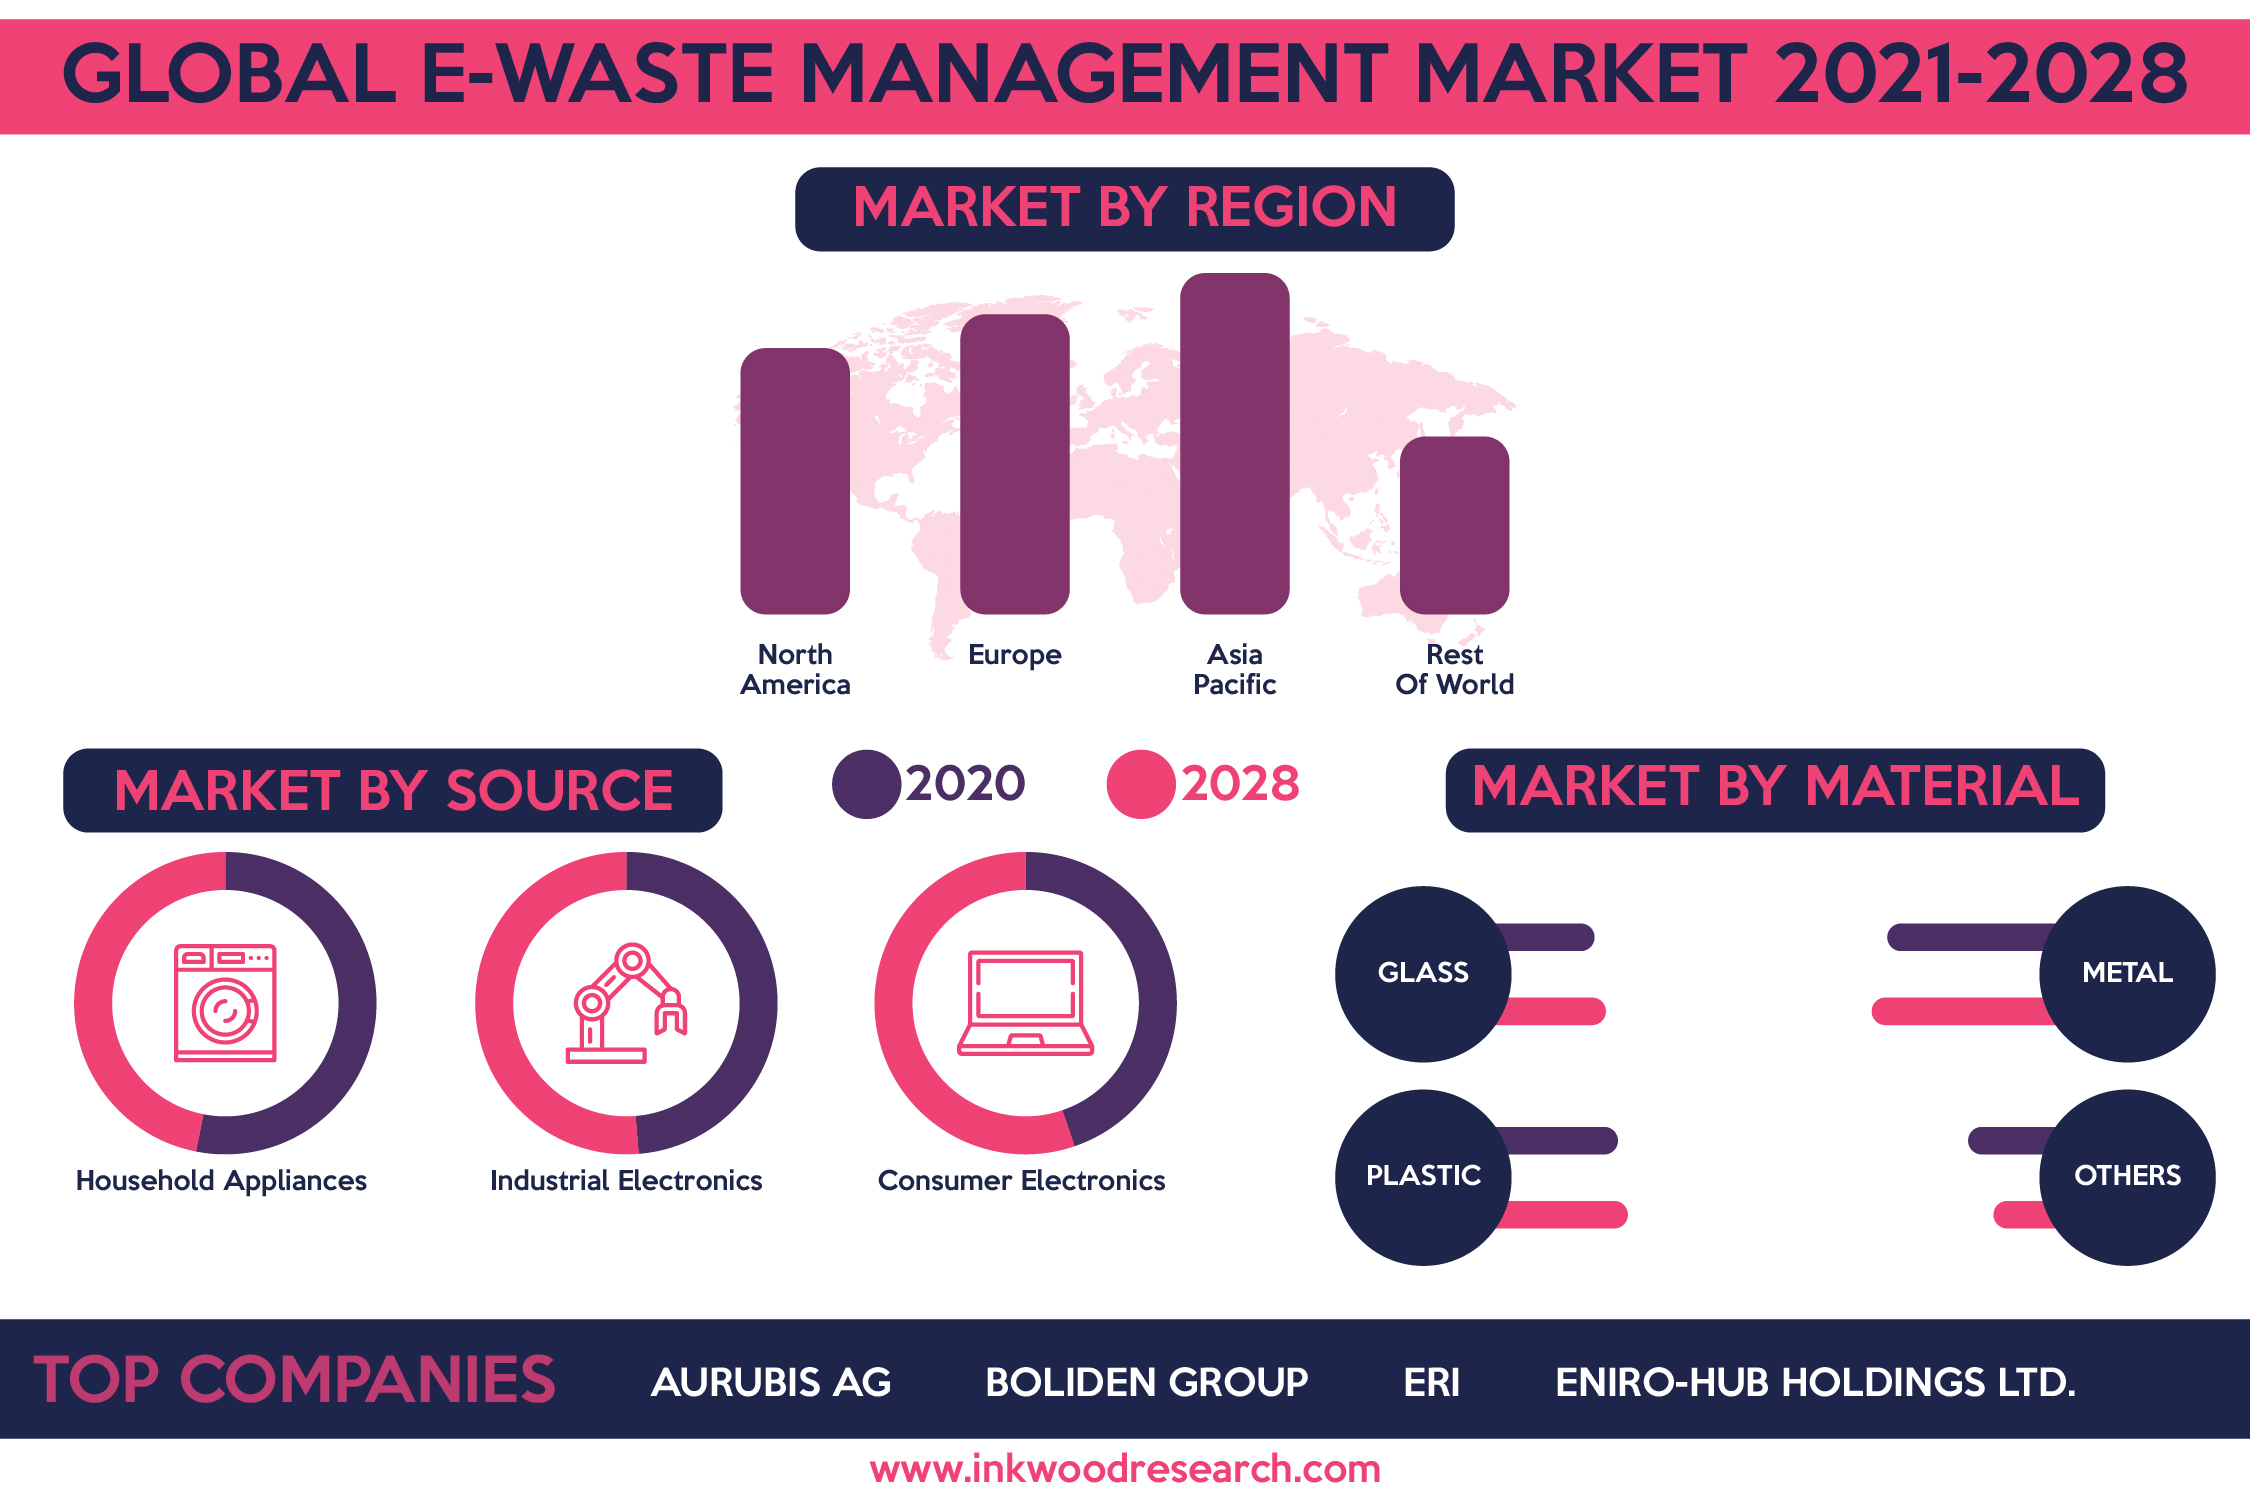 Global E-Waste Management Market will grow with Depletion in Metal Resources